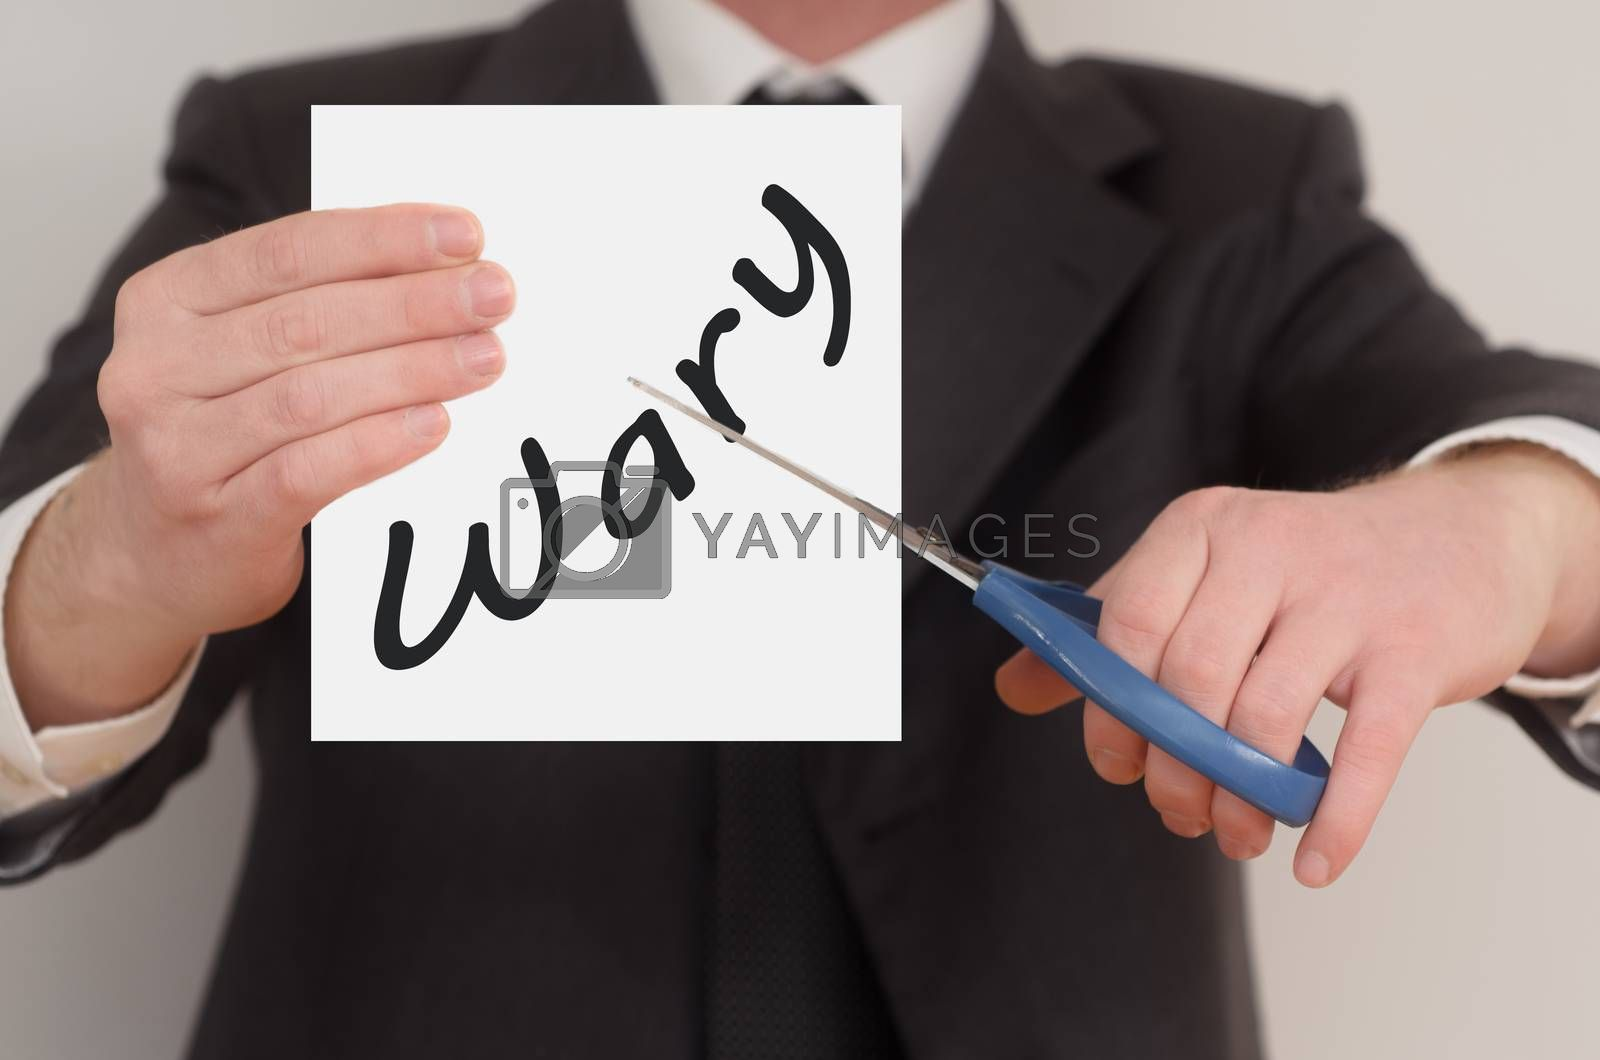 Wary, man in suit cutting text on paper with scissors